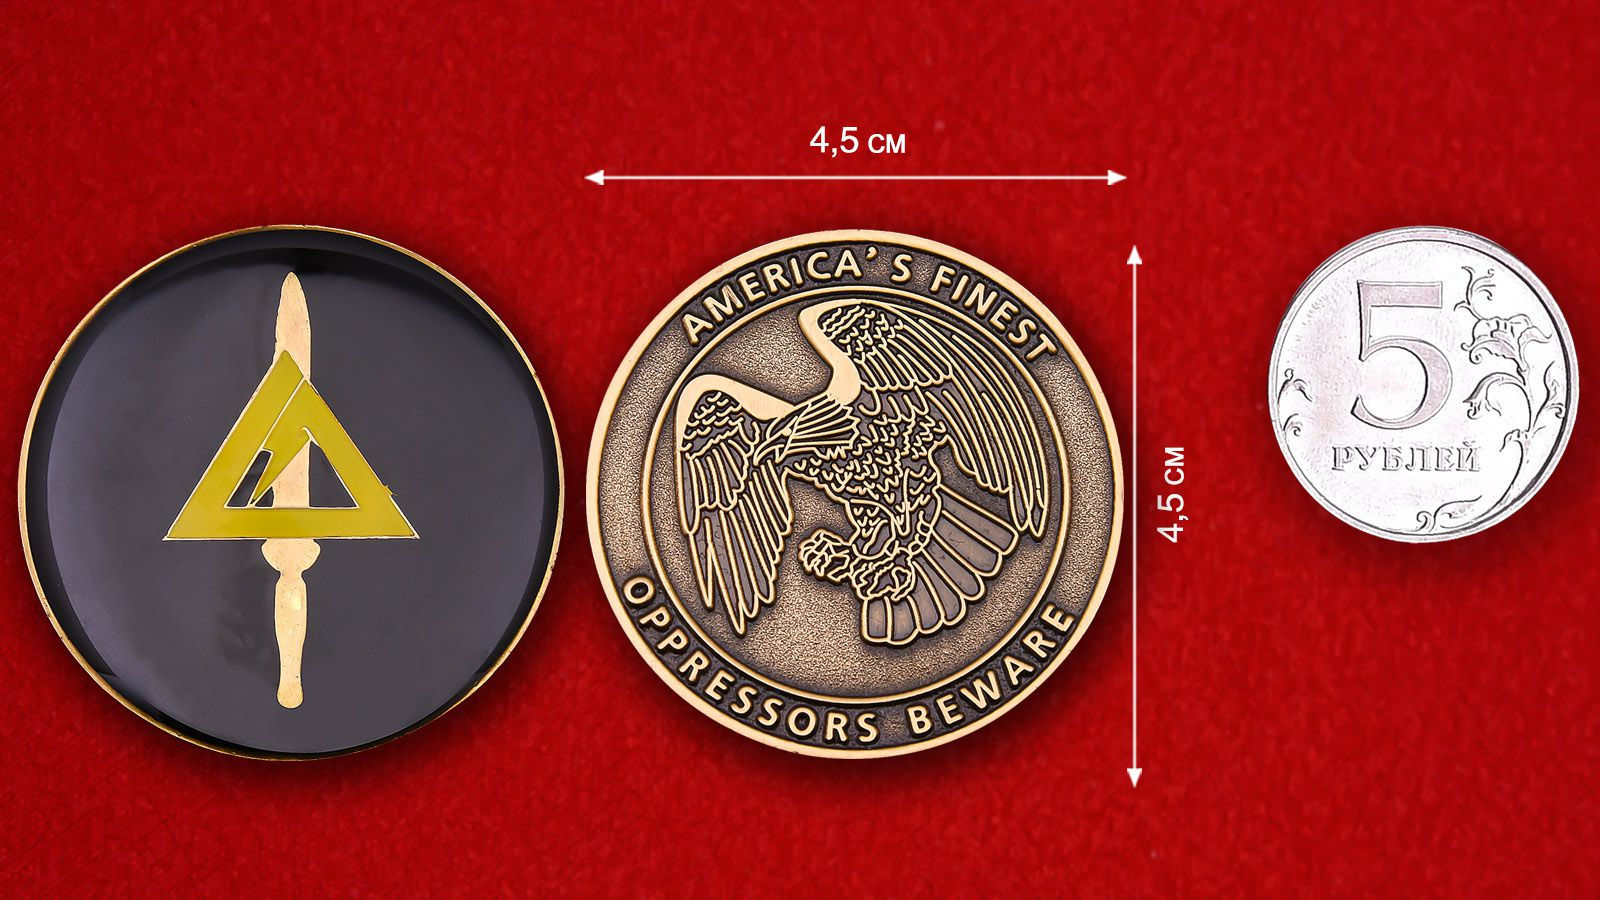 Challenge coin FBI in Louisville - comparative size